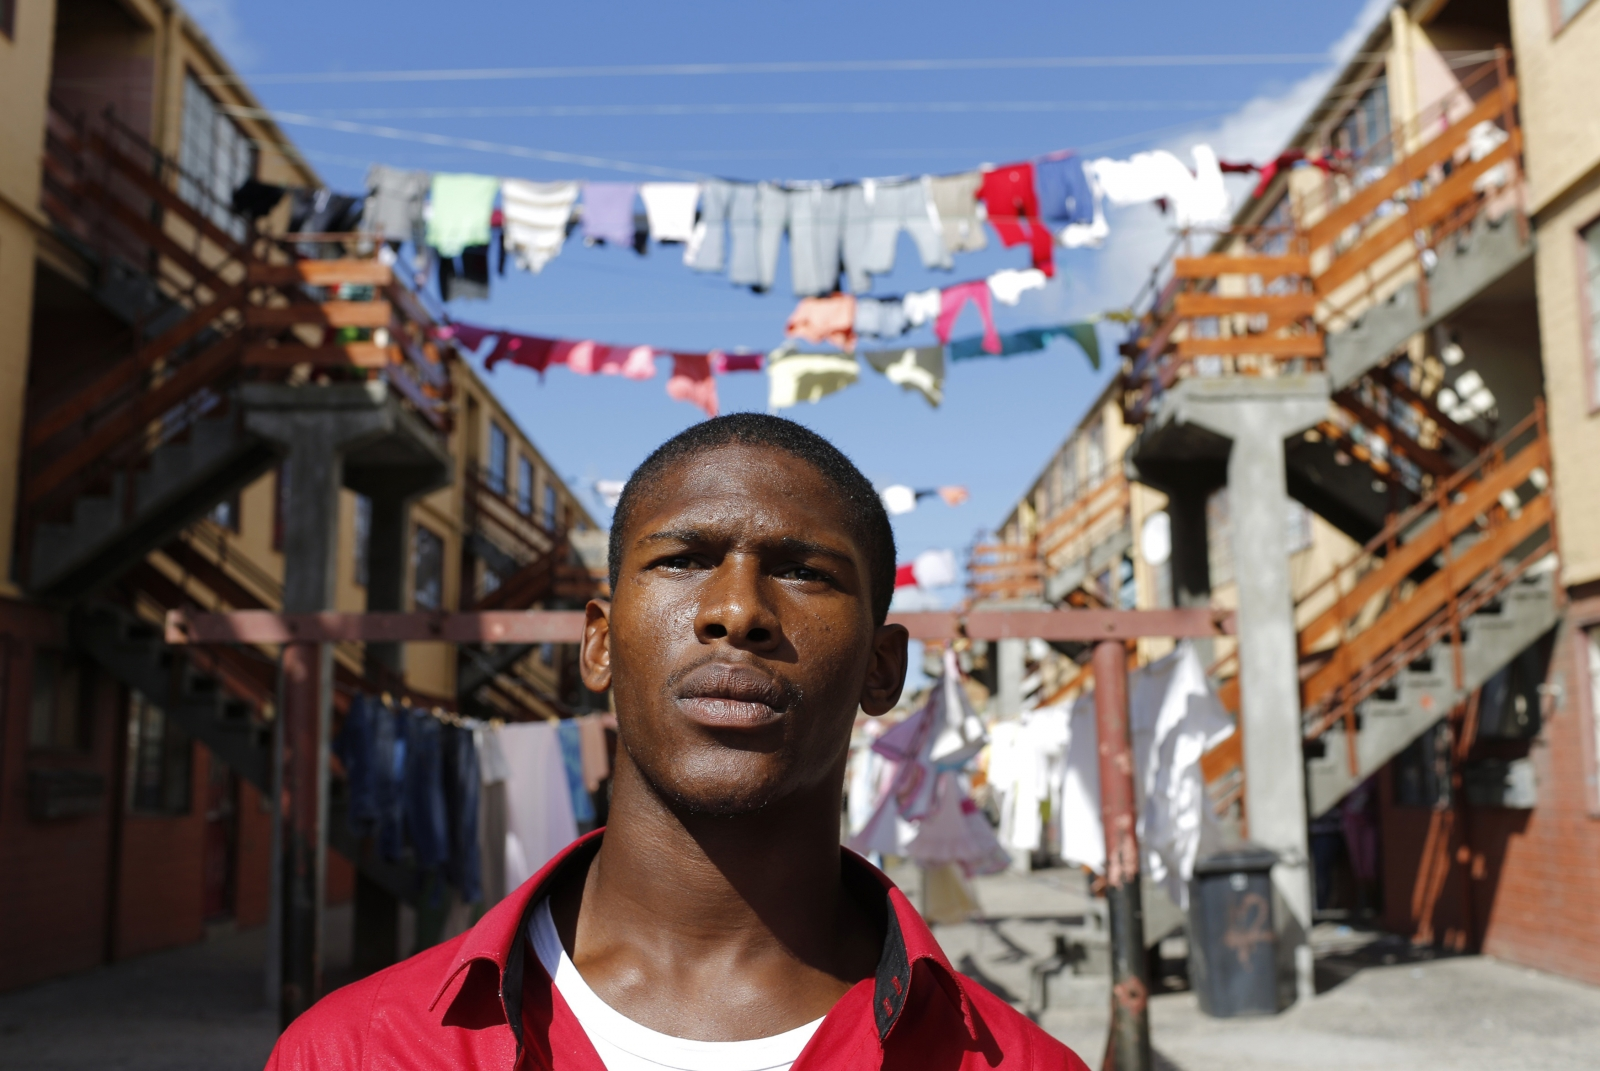 Youth worker Nathaniel Groep, 19, stands in front of flats outside his home in Mannenberg, a gang-ravaged township, in Cape Town April 18, 2014